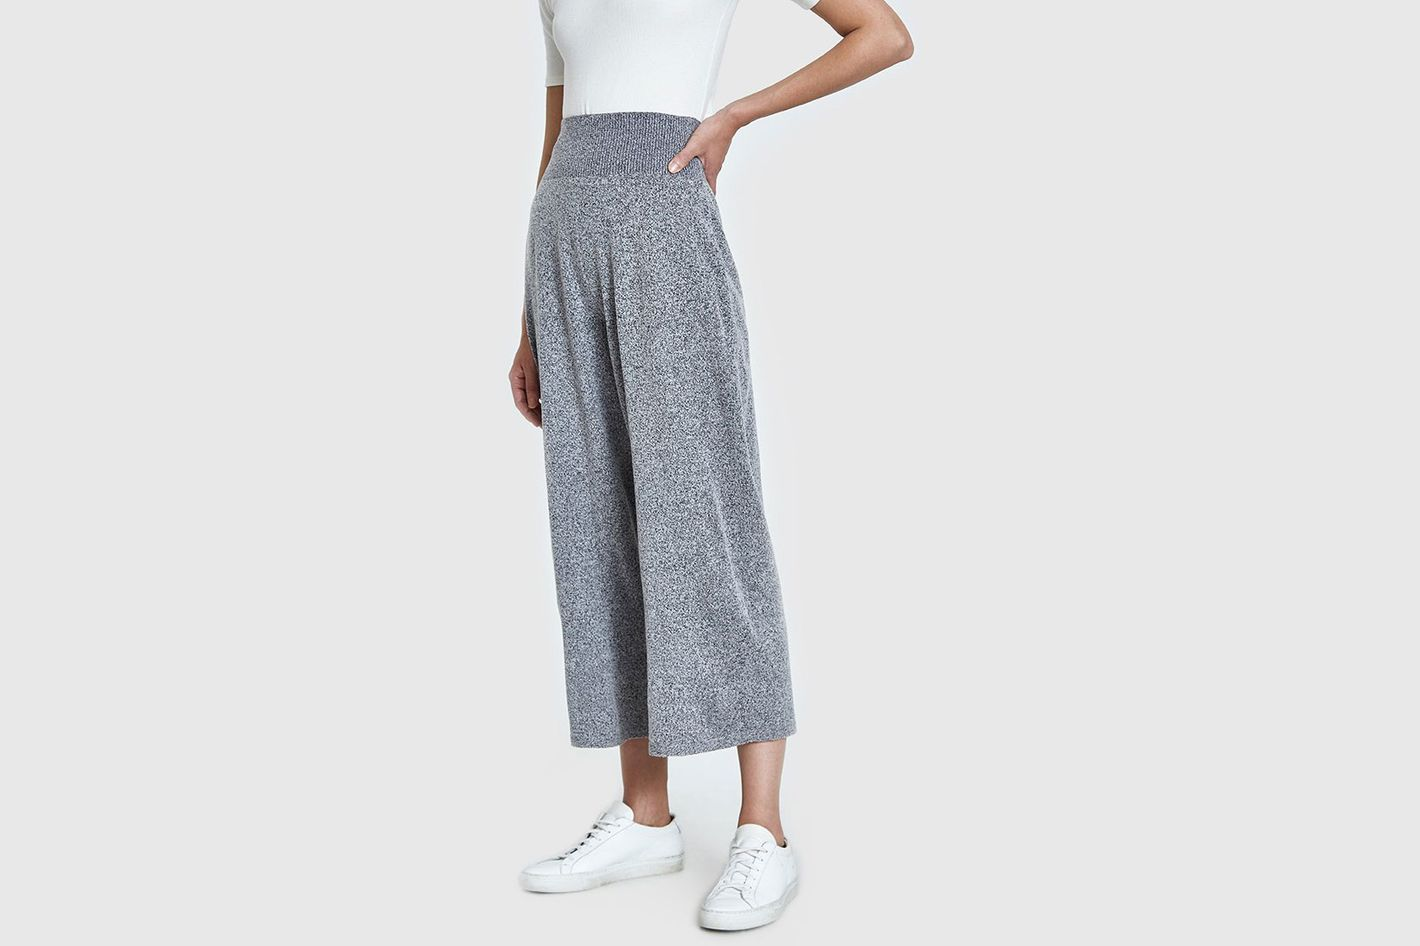 Sori High Waist Pants in Grey